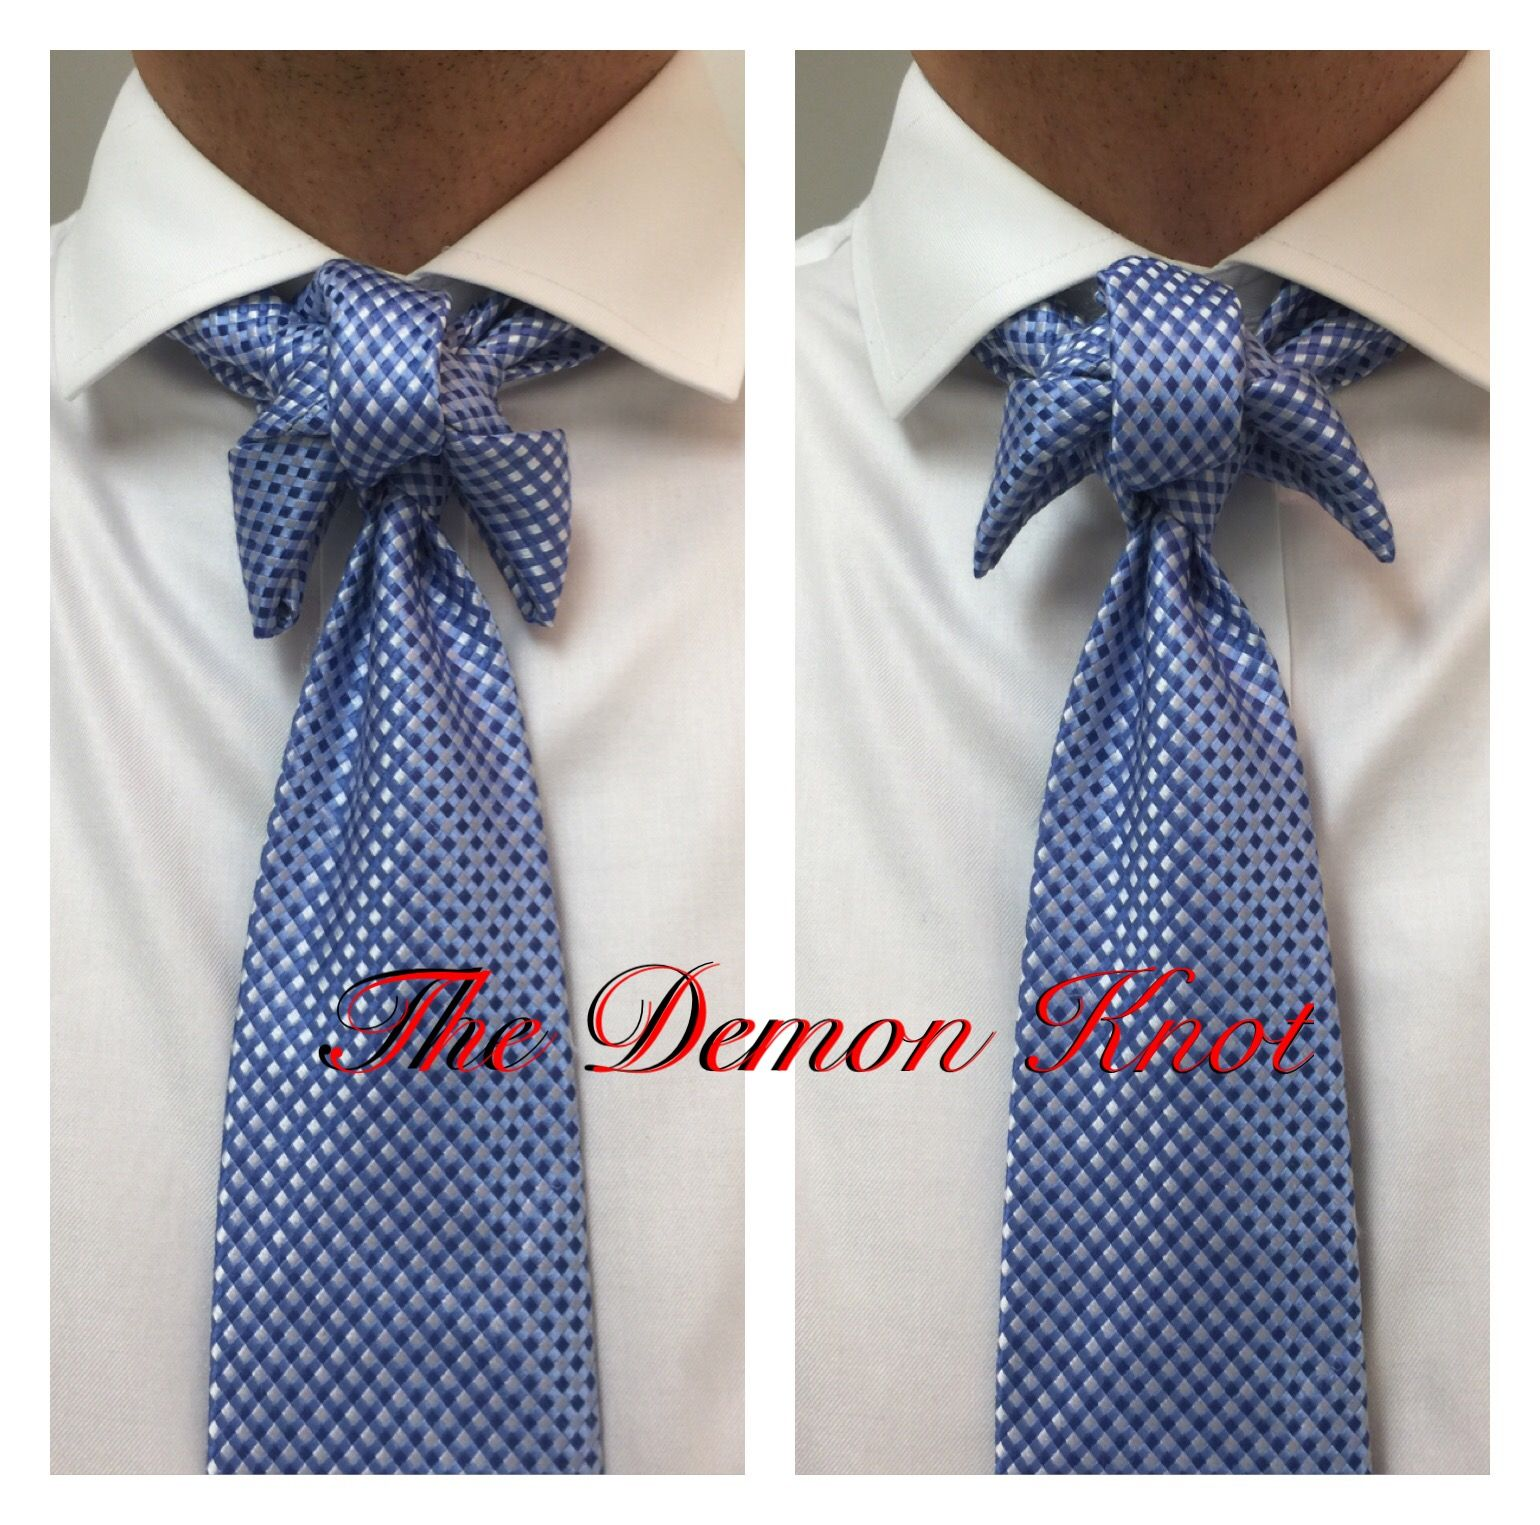 The Demon Knot By Boris Mocka With Images Neck Tie Knots Tie